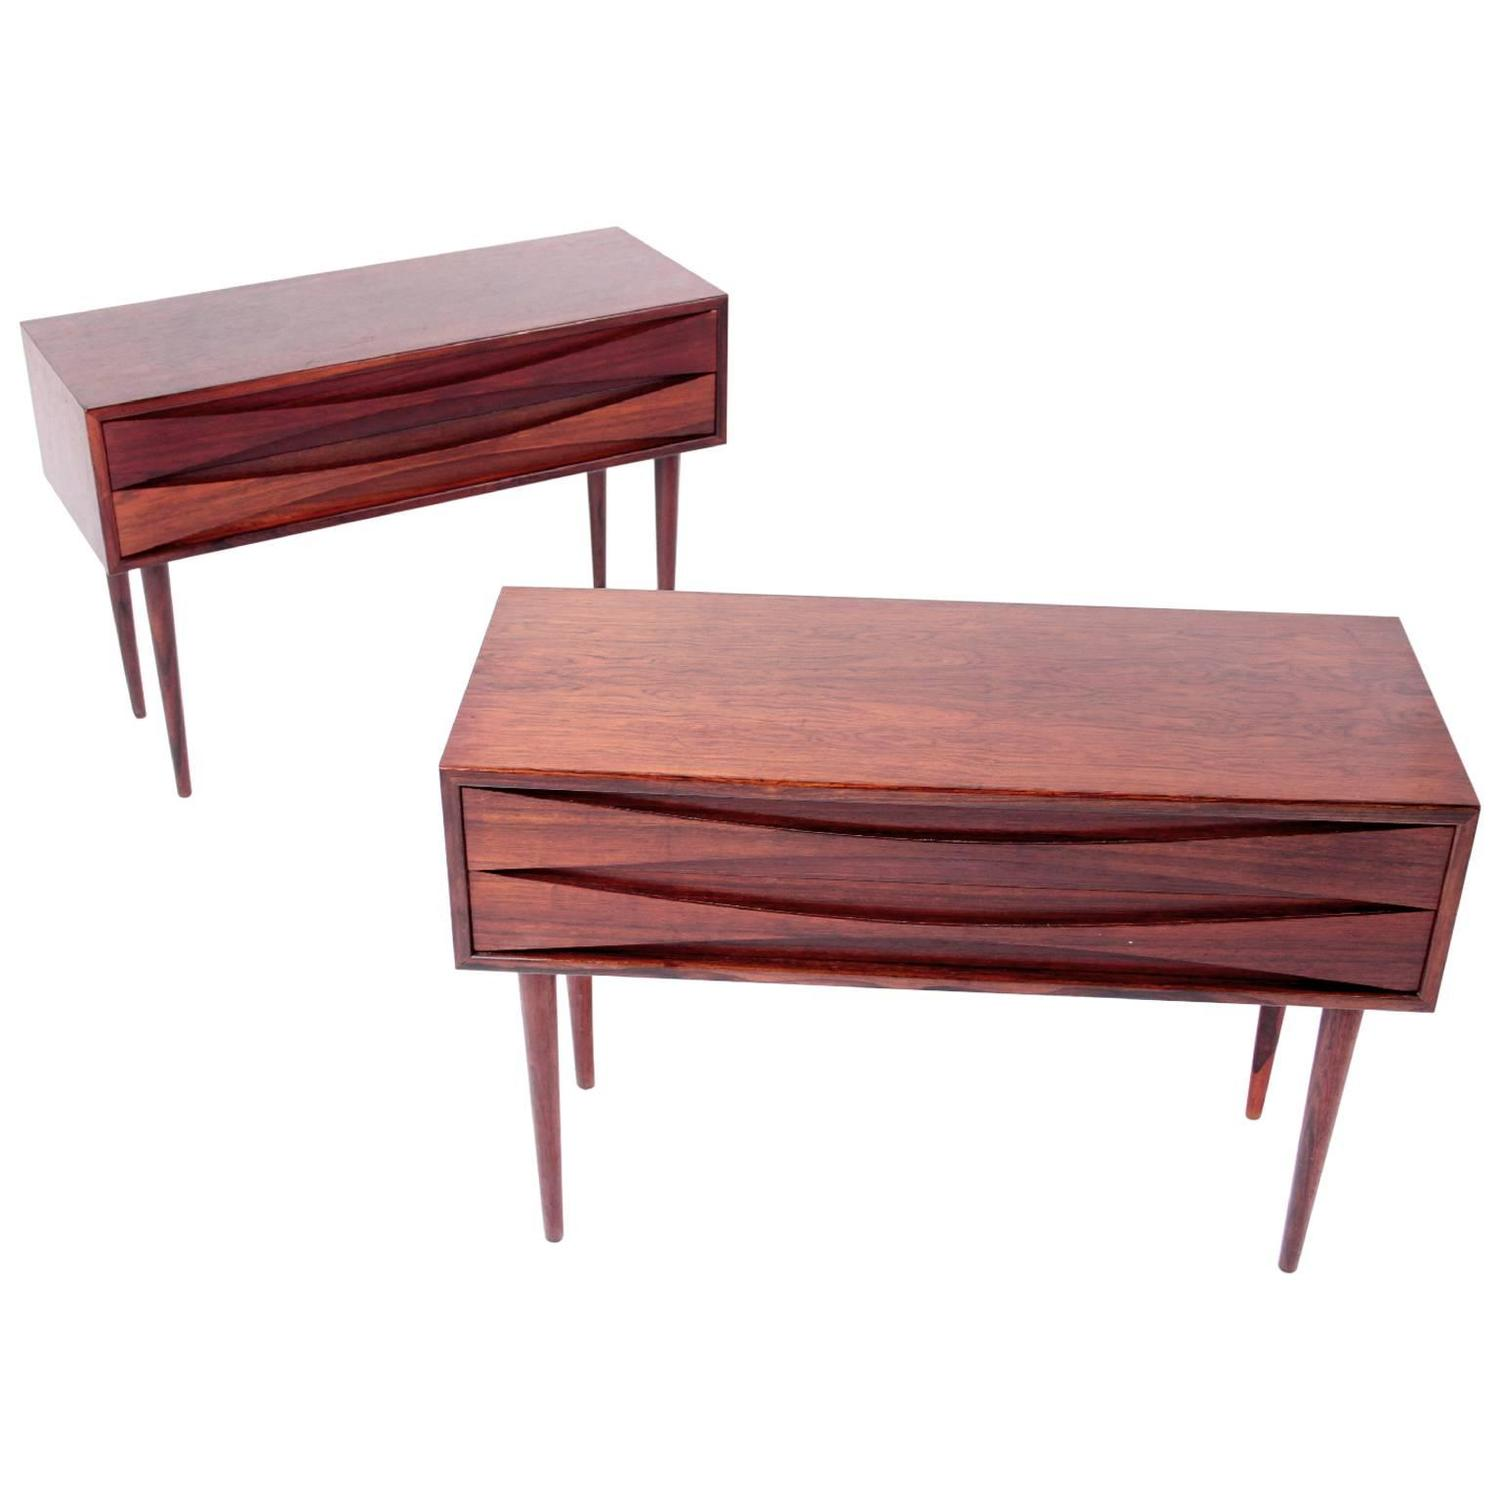 arne vodder rosewood bedside tables at 1stdibs. Black Bedroom Furniture Sets. Home Design Ideas